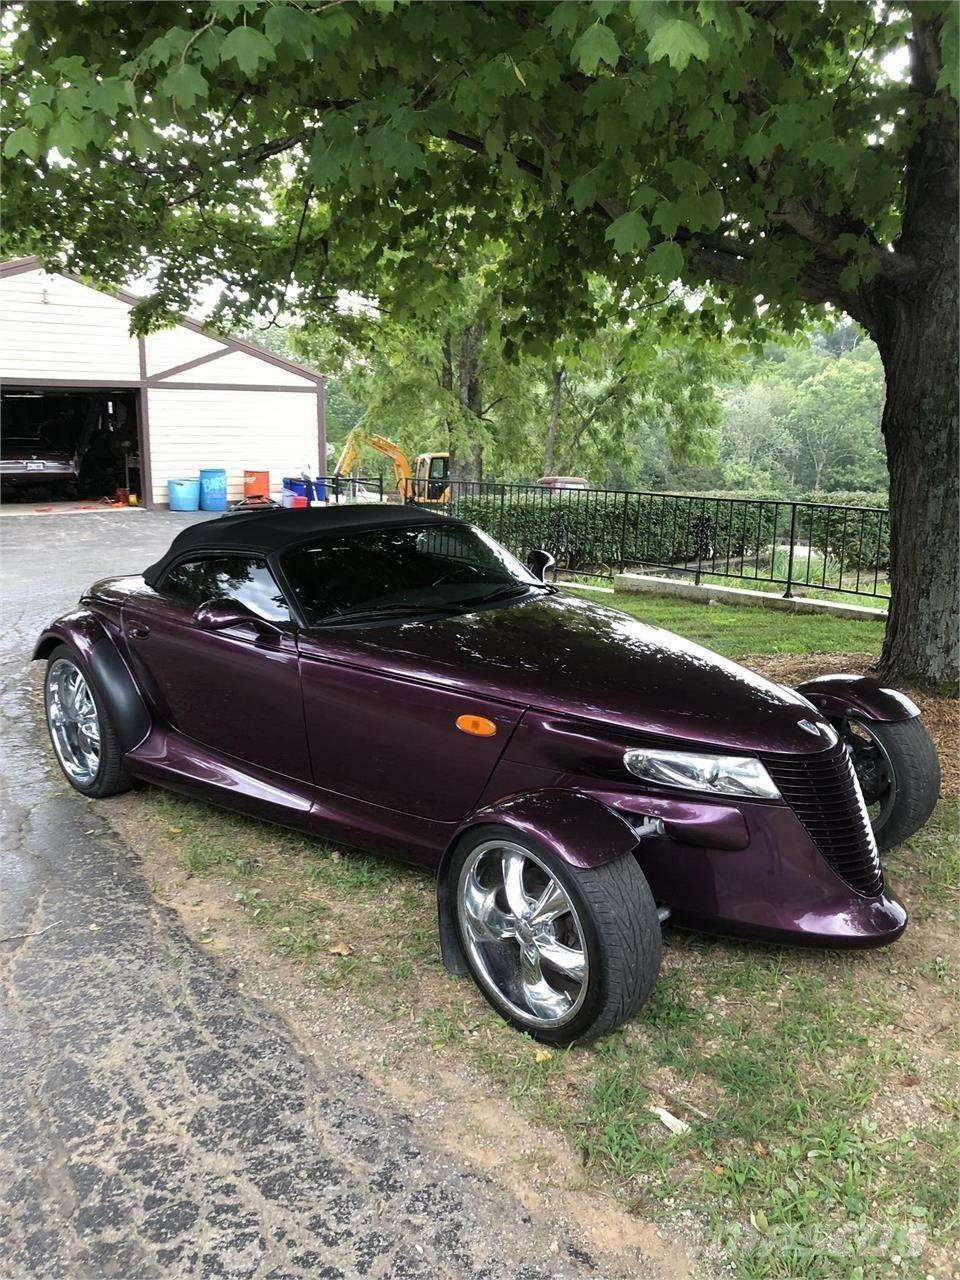 [Other] PLYMOUTH PROWLER